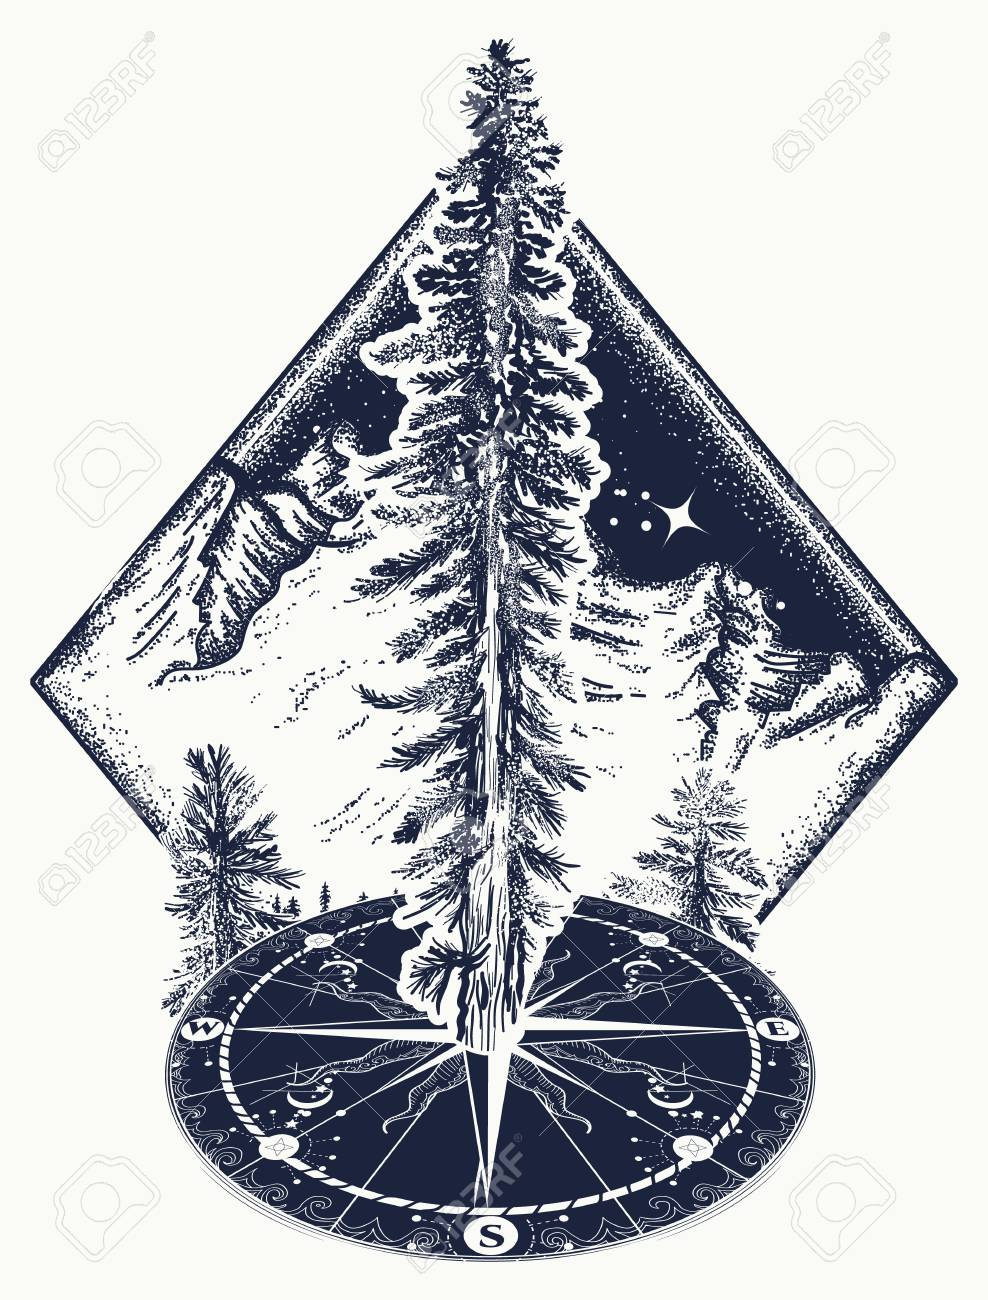 Pine Tree And Compass Tattoo Symbol Of Tourism Forest Rock